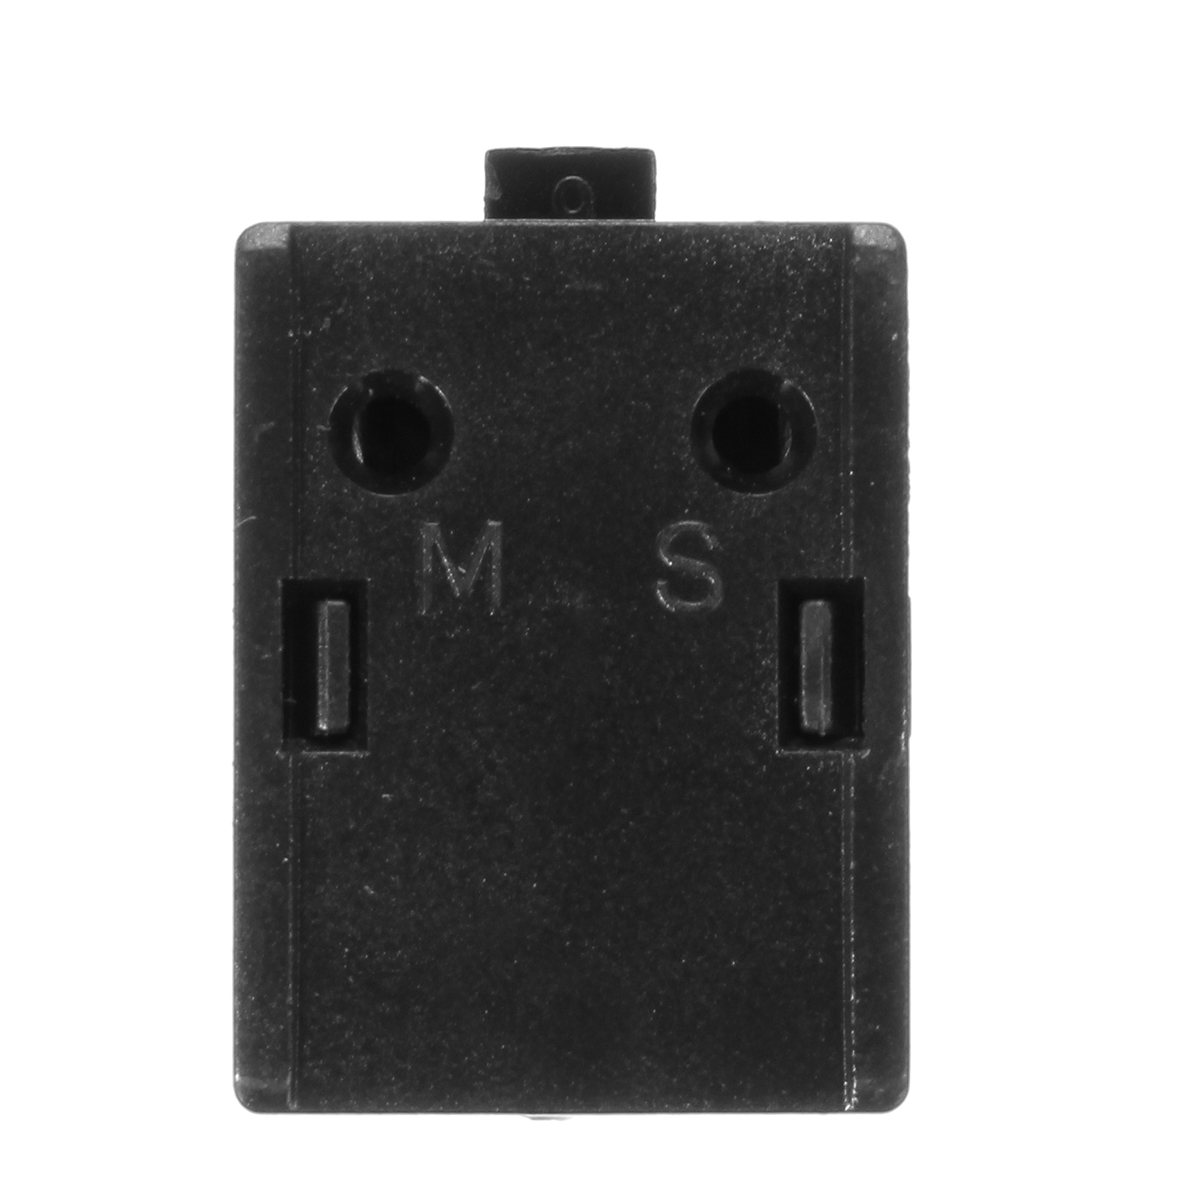 Refrigerator Start Relay PTC For QP-2-4.7 4.7 Ohm 3 Pin